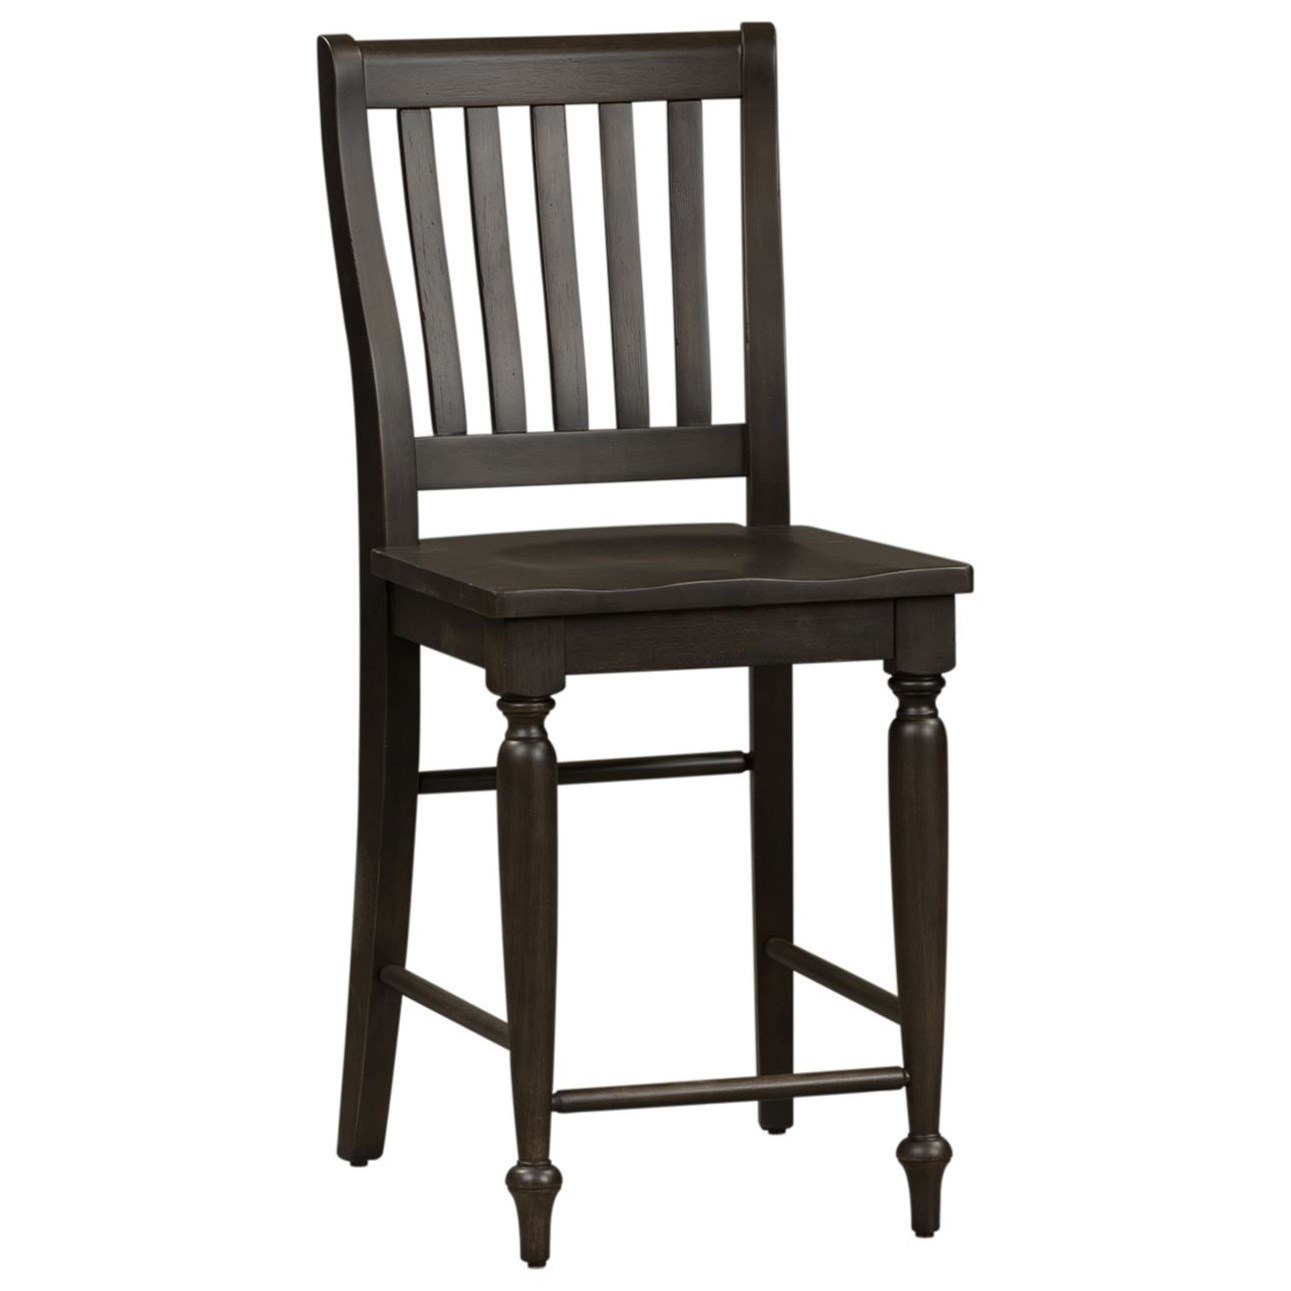 Relaxed Vintage Slat Back Counter Chair